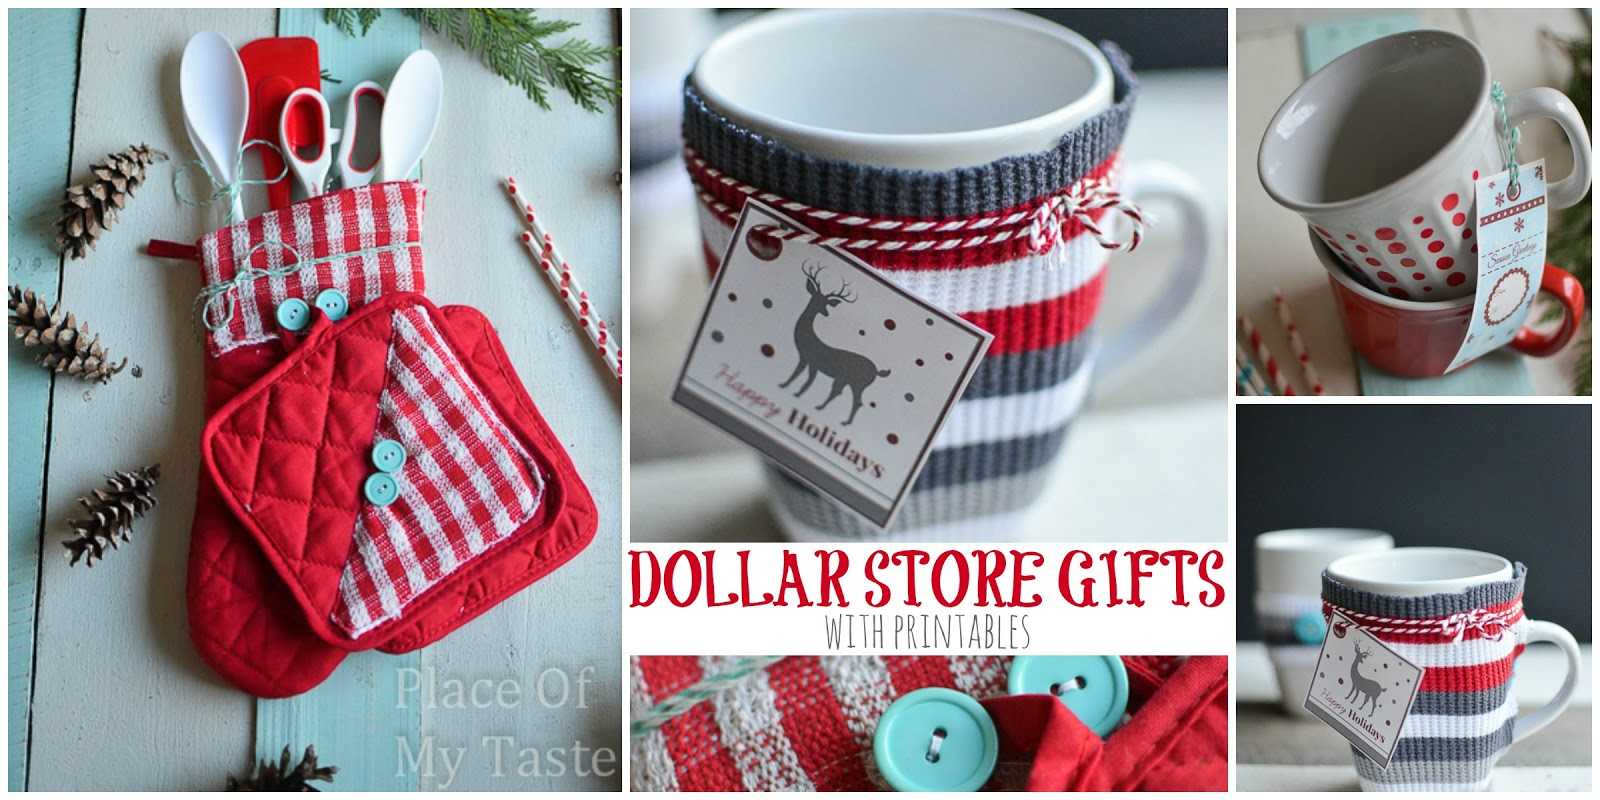 3 LAST MINUTE HANDMADE GIFTS FROM $1 STORE - PLACE OF MY TASTE